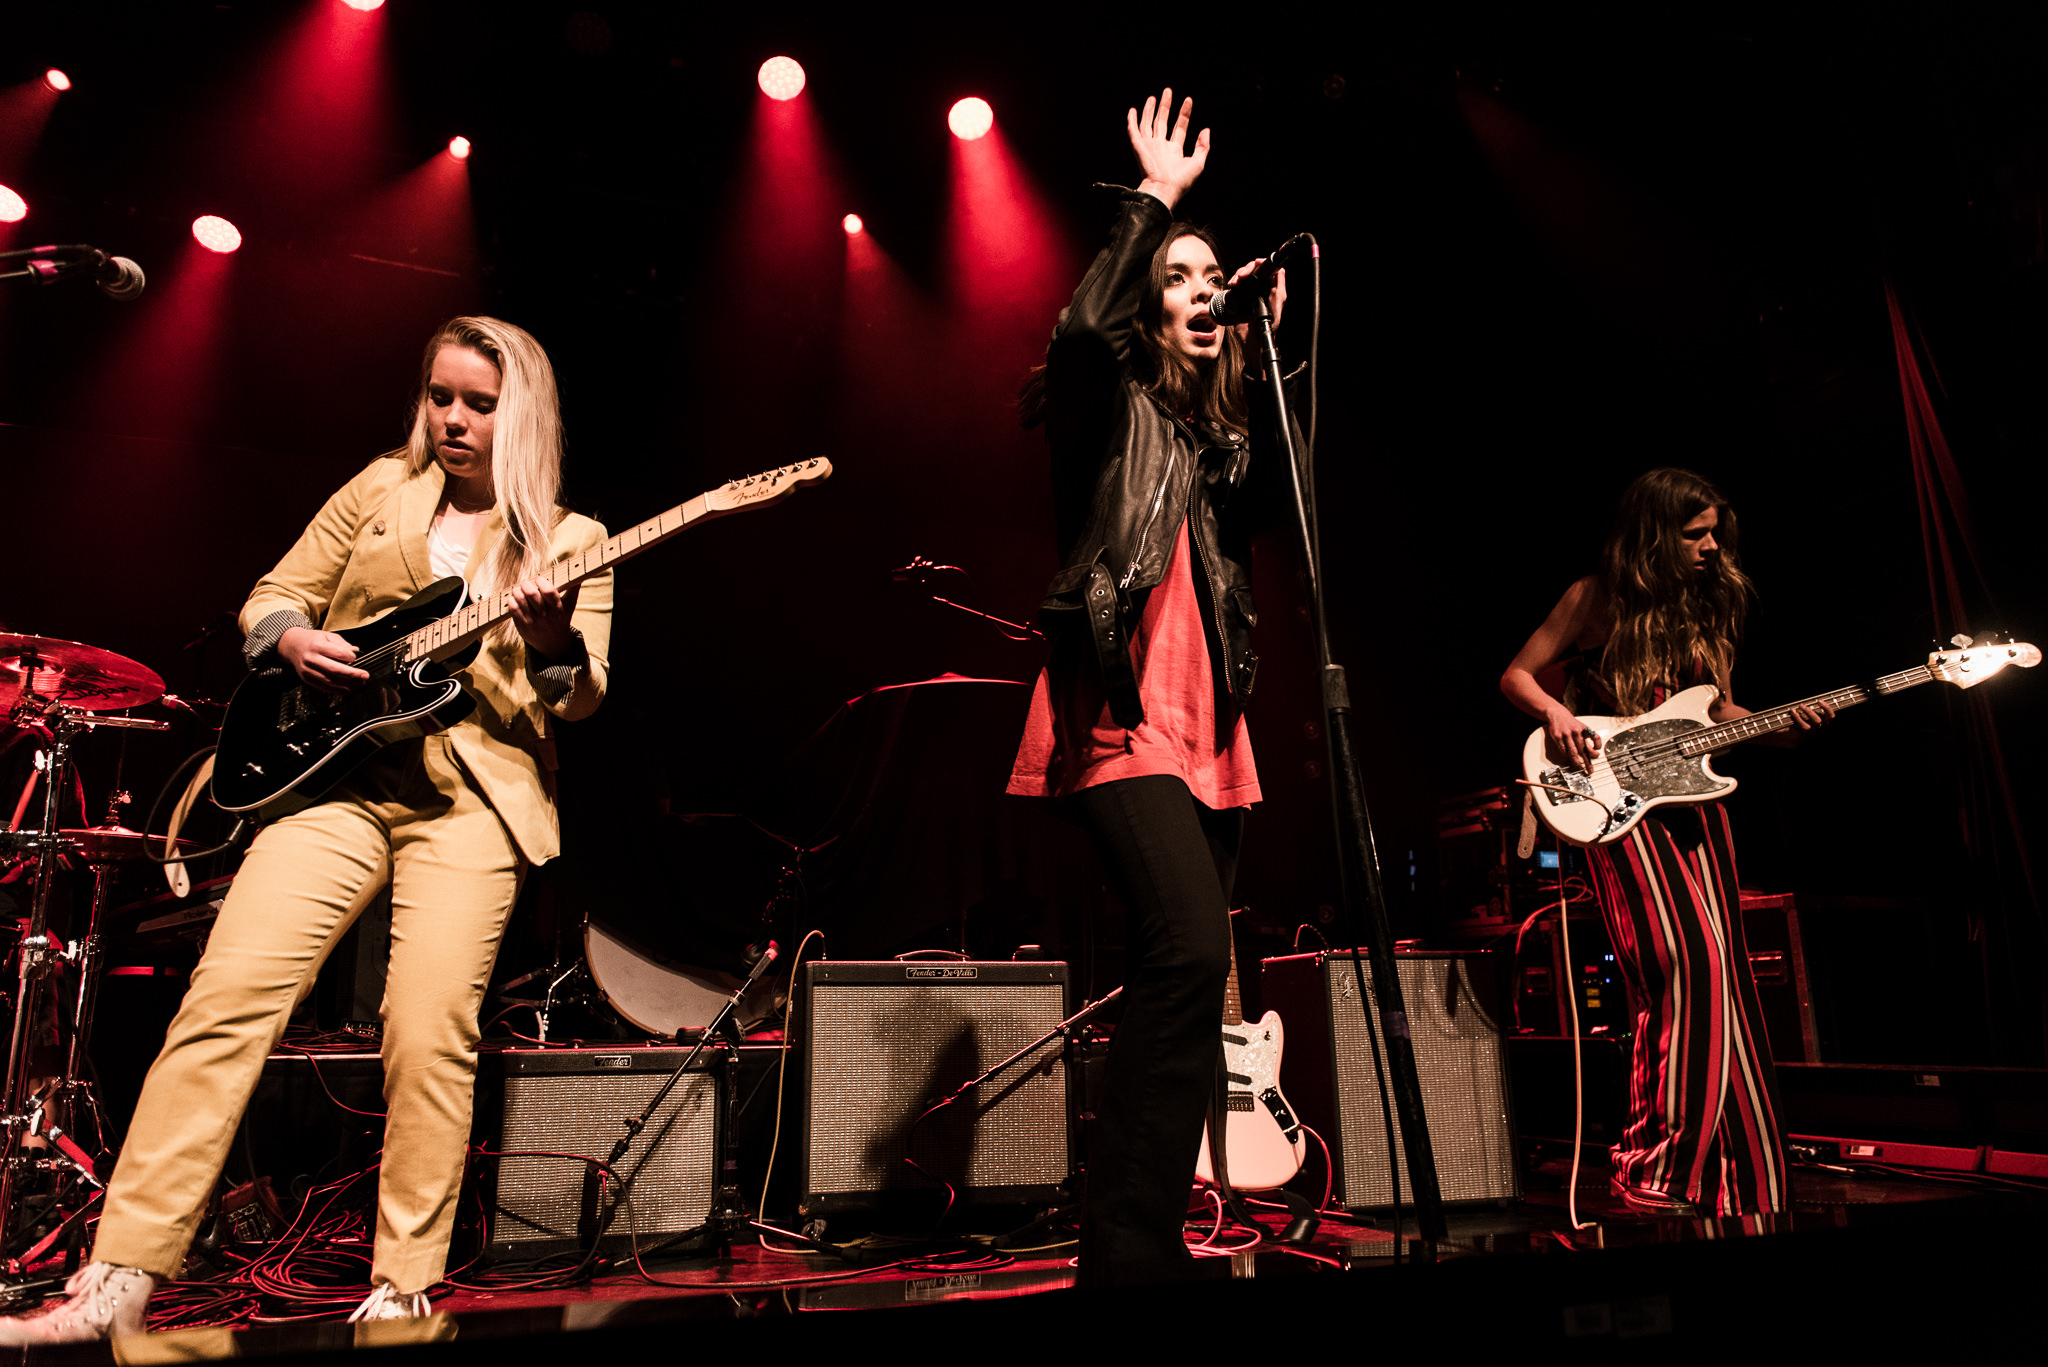 The Aces Irving Plaza Stars and Scars Photo